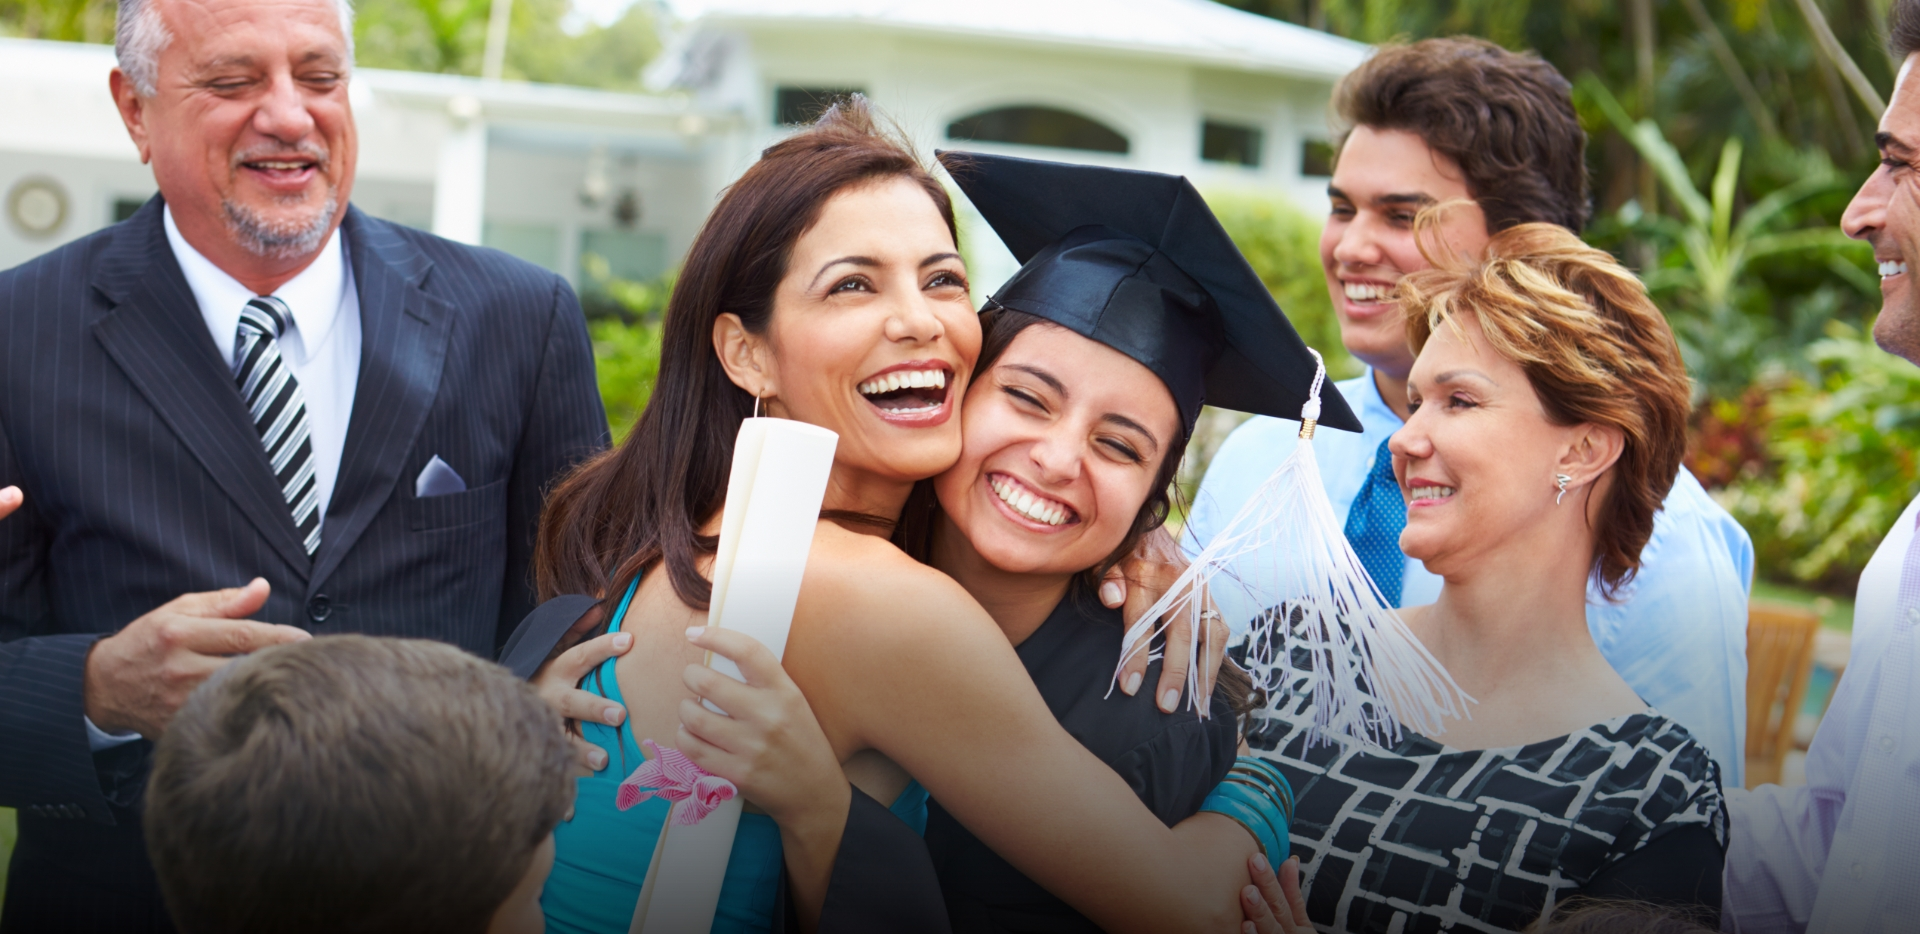 Hispanic mother hugs daughter wearing cap and gown and holding diploma after college graduation ceremony while happy family encircles them